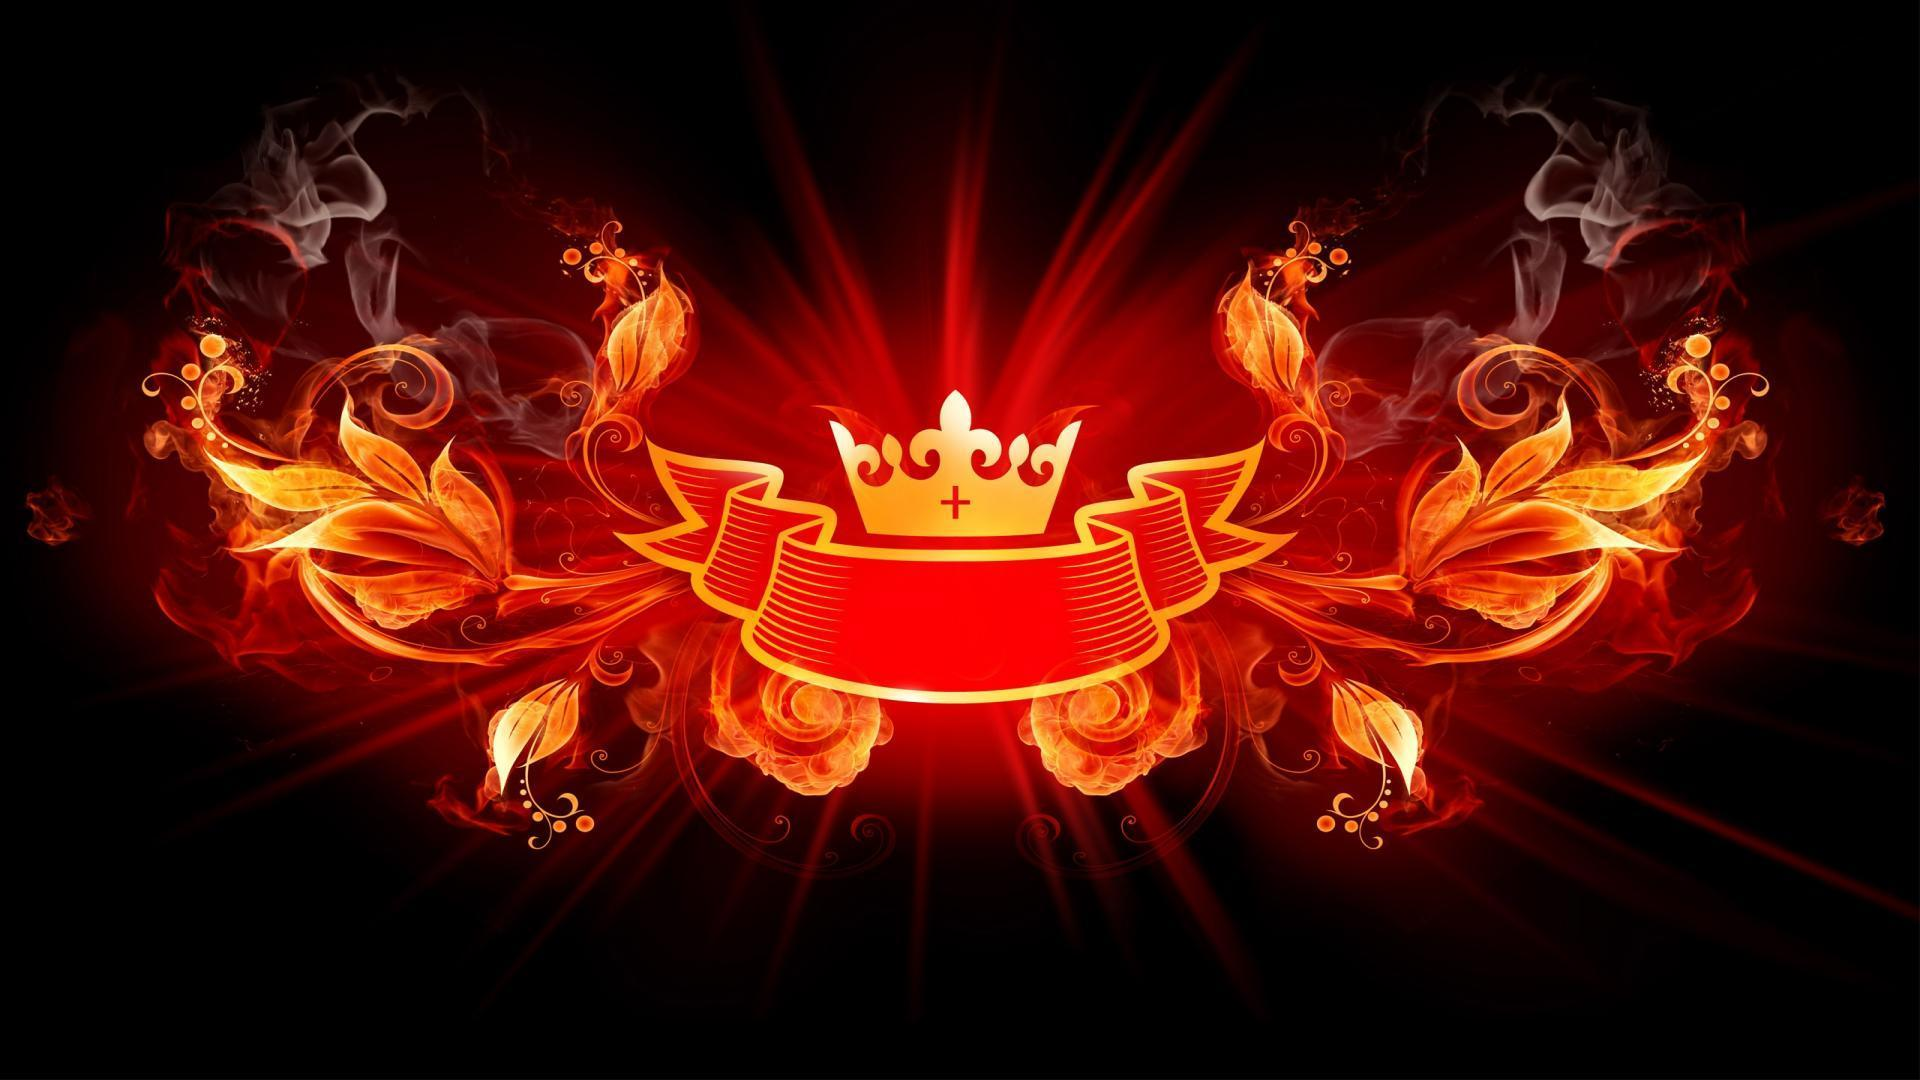 black king crown wallpaper - photo #27